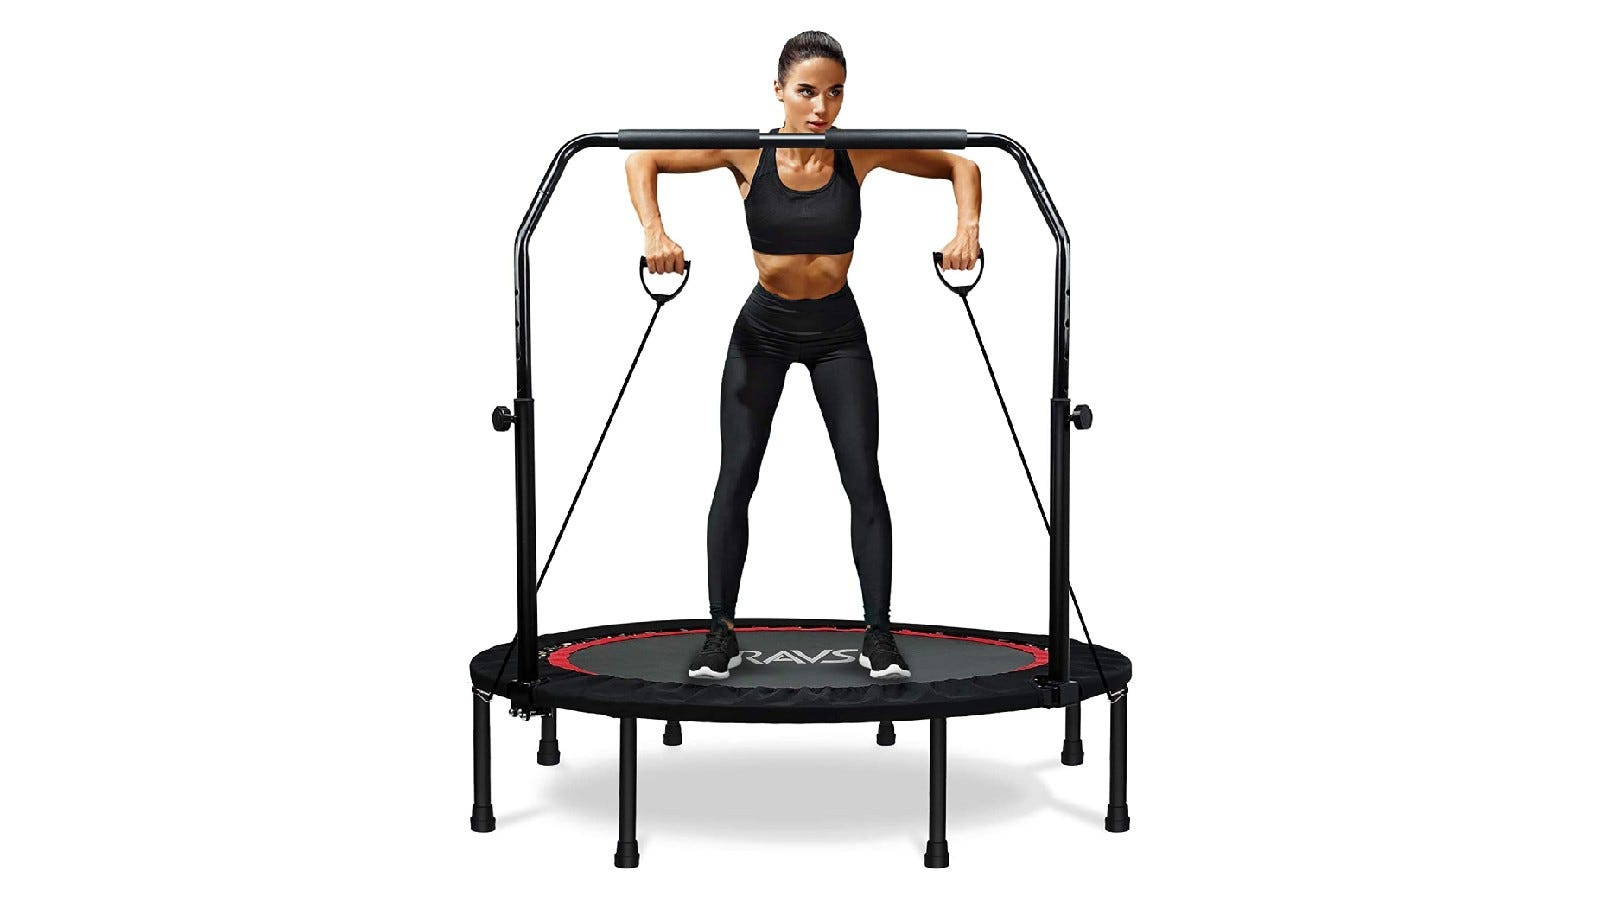 a woman standing on a mini trampoline and using resistance bands